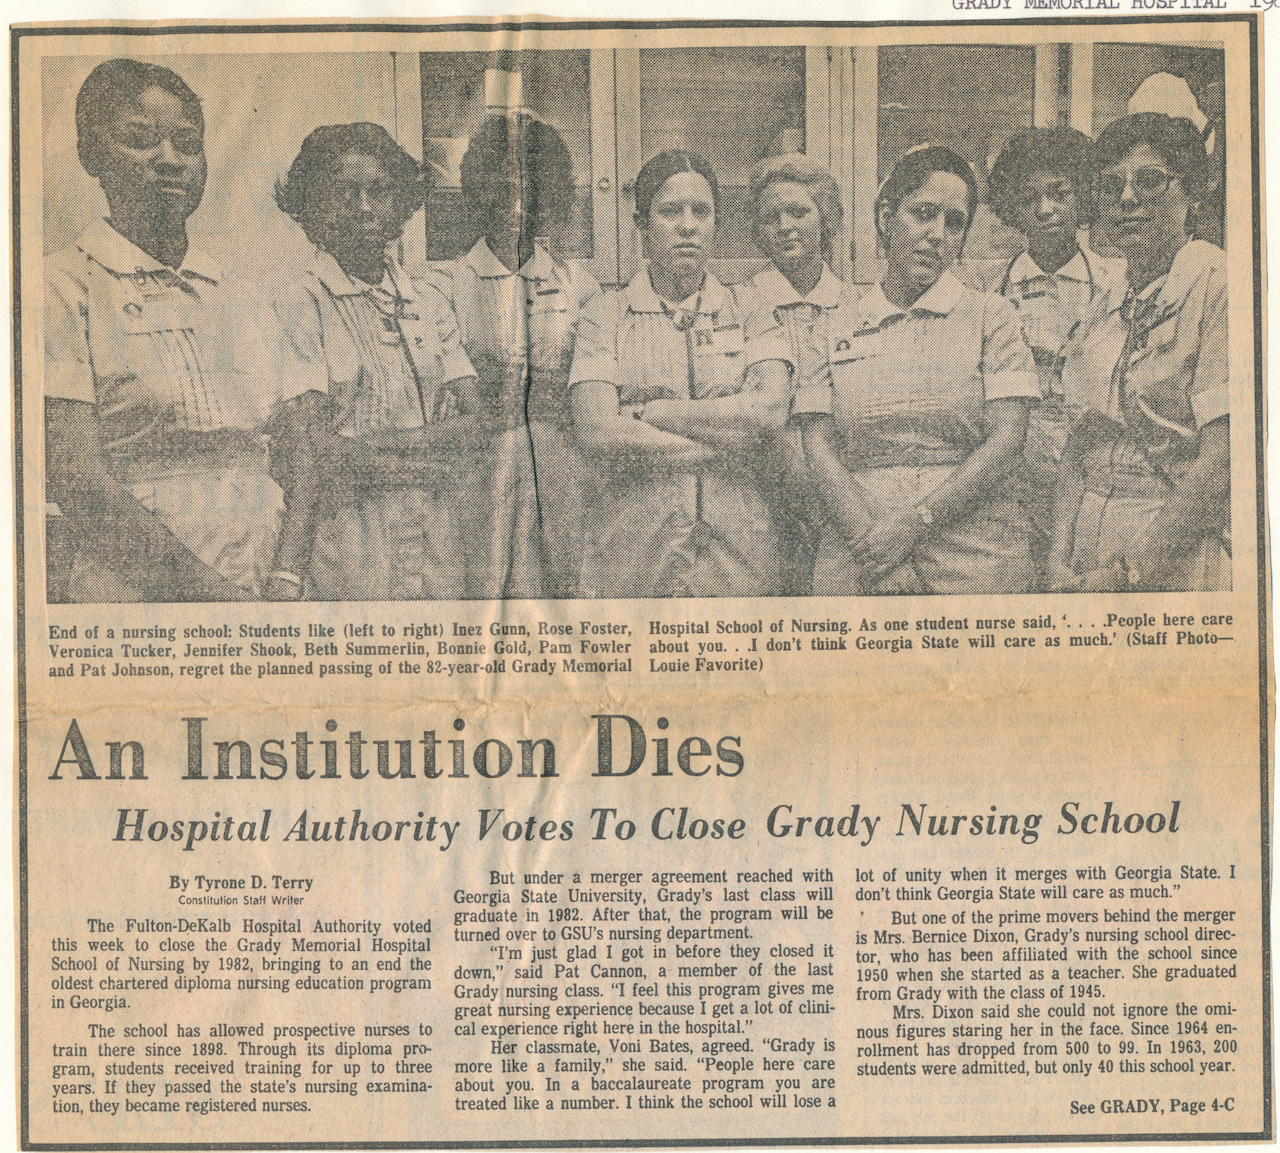 Image of Black and white nursing students in scrubs with the newspaper headline title An Institution Dies, in reference to the end of the Grady hospital nursing program